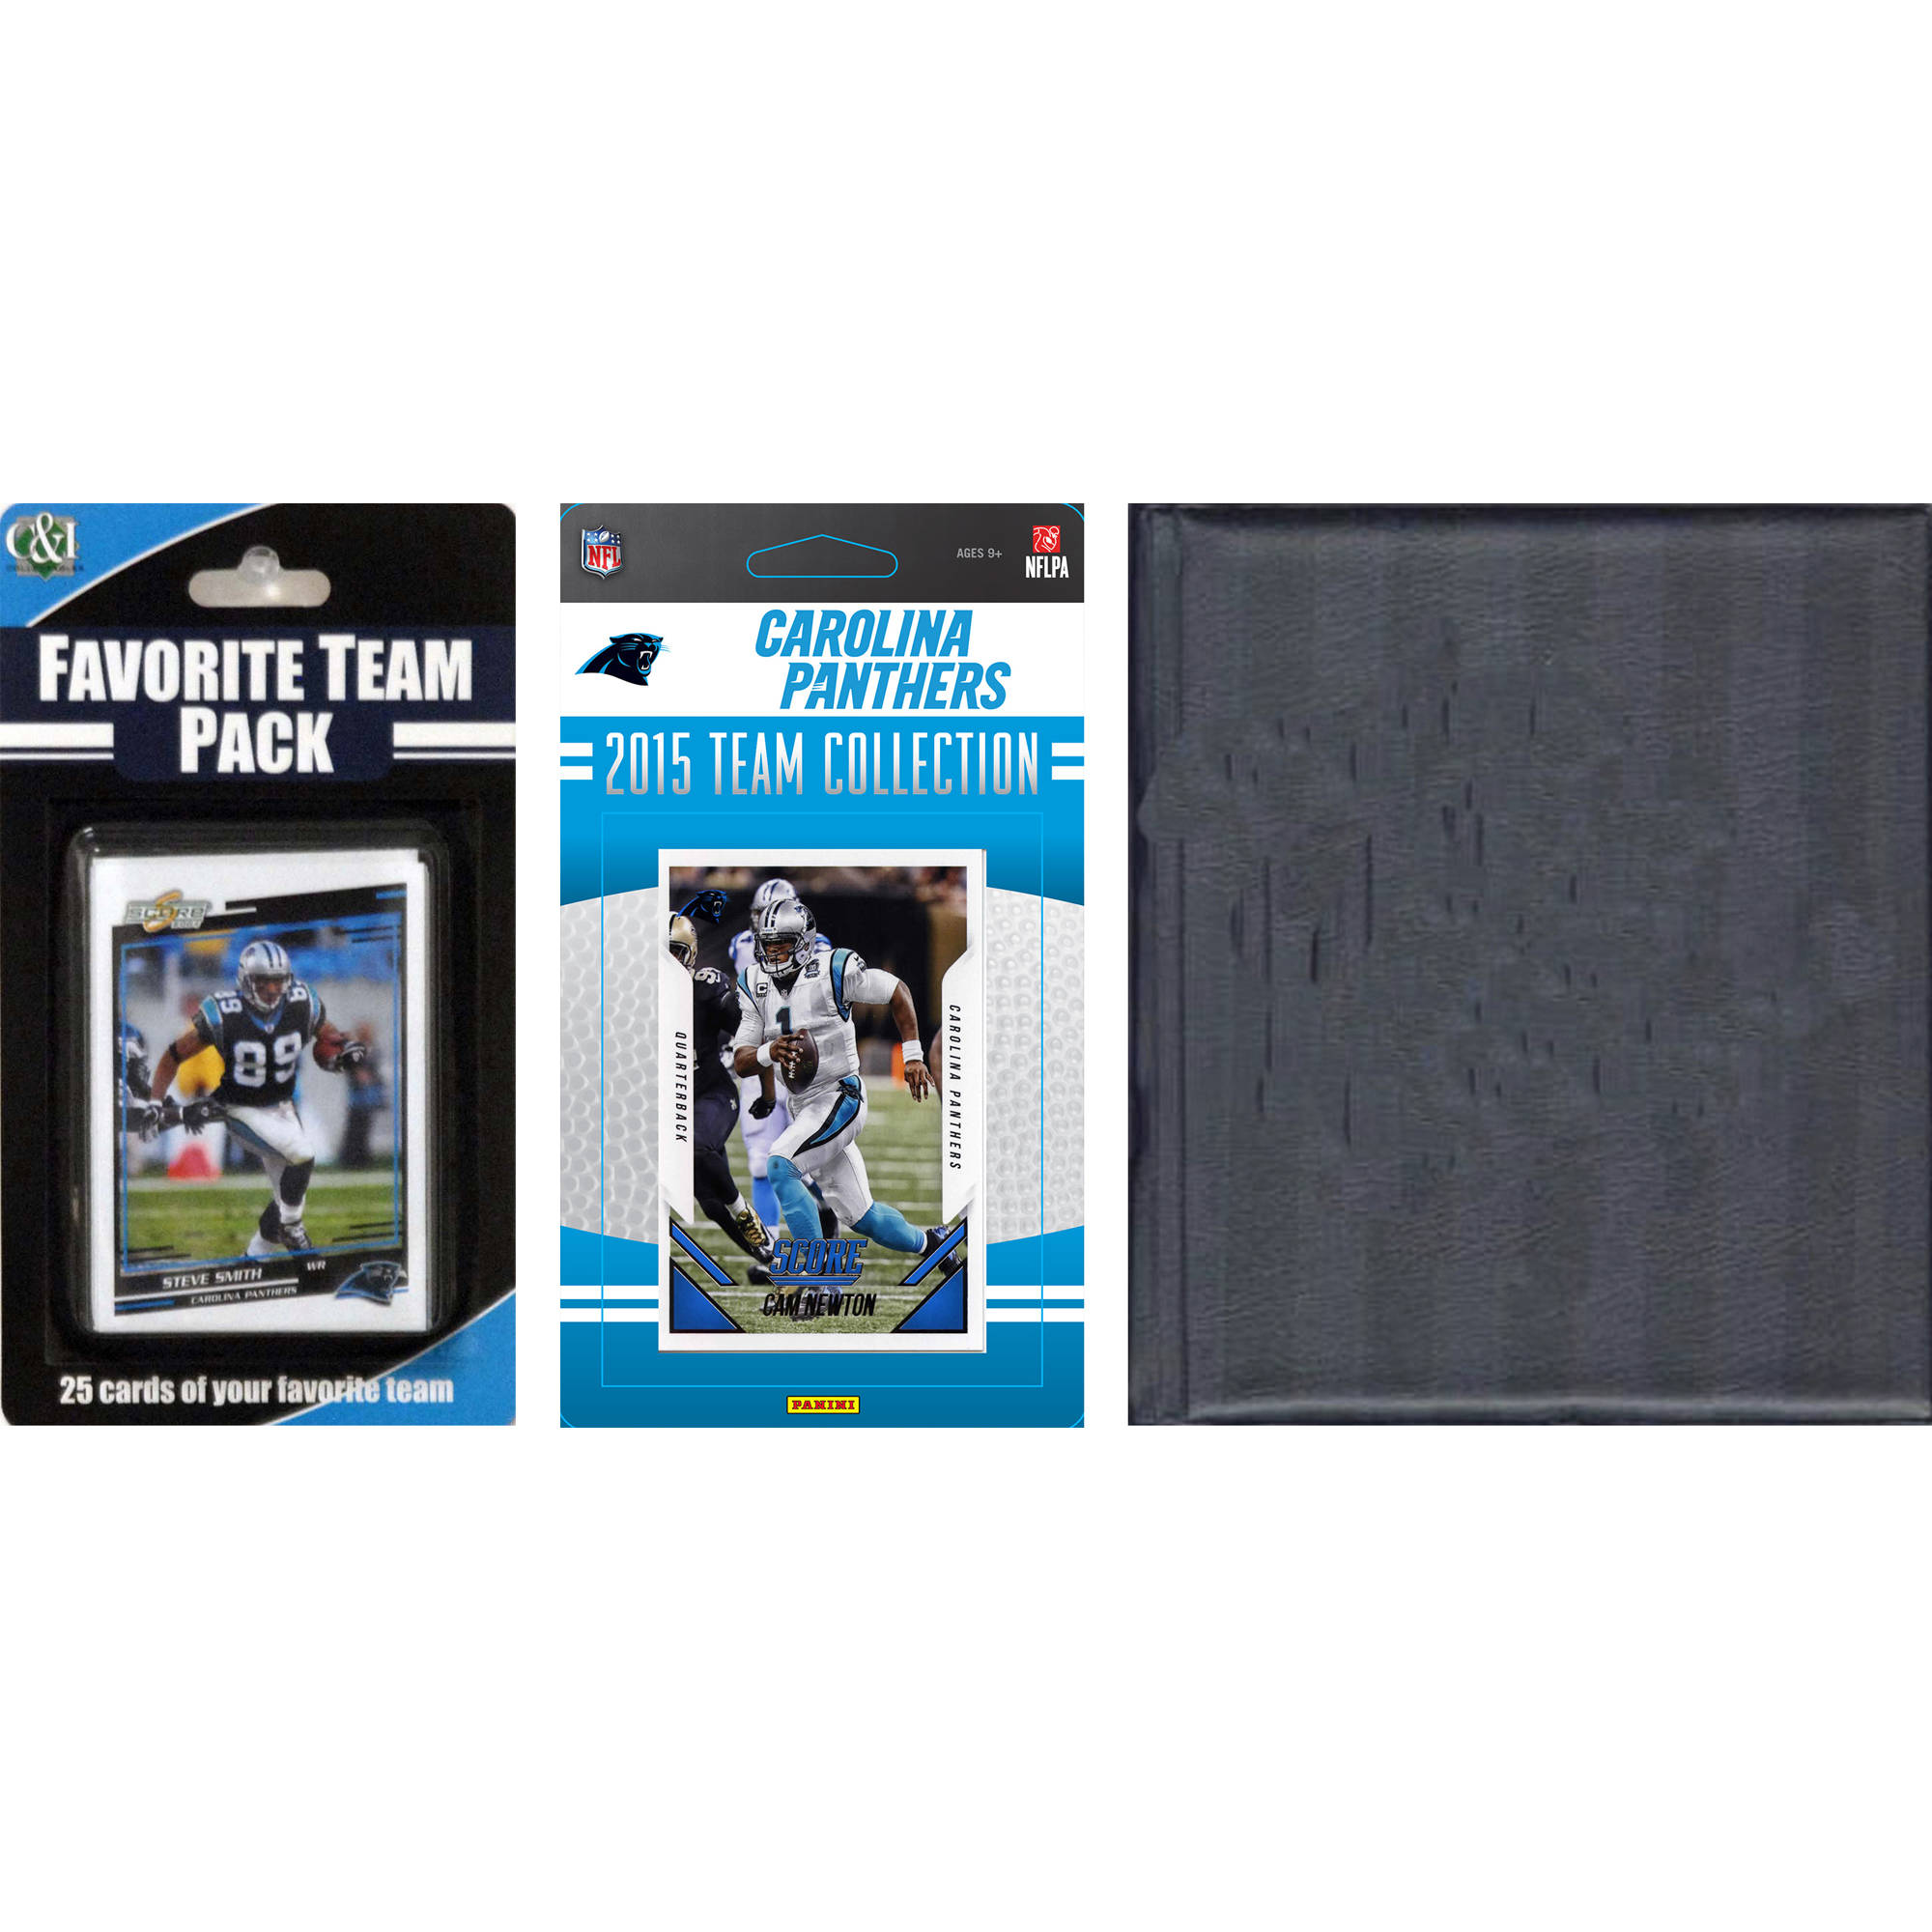 C&I Collectables NFL Carolina Panthers Licensed 2015 Score Team Set and Favorite Player Trading Card Pack Plus Storage Album